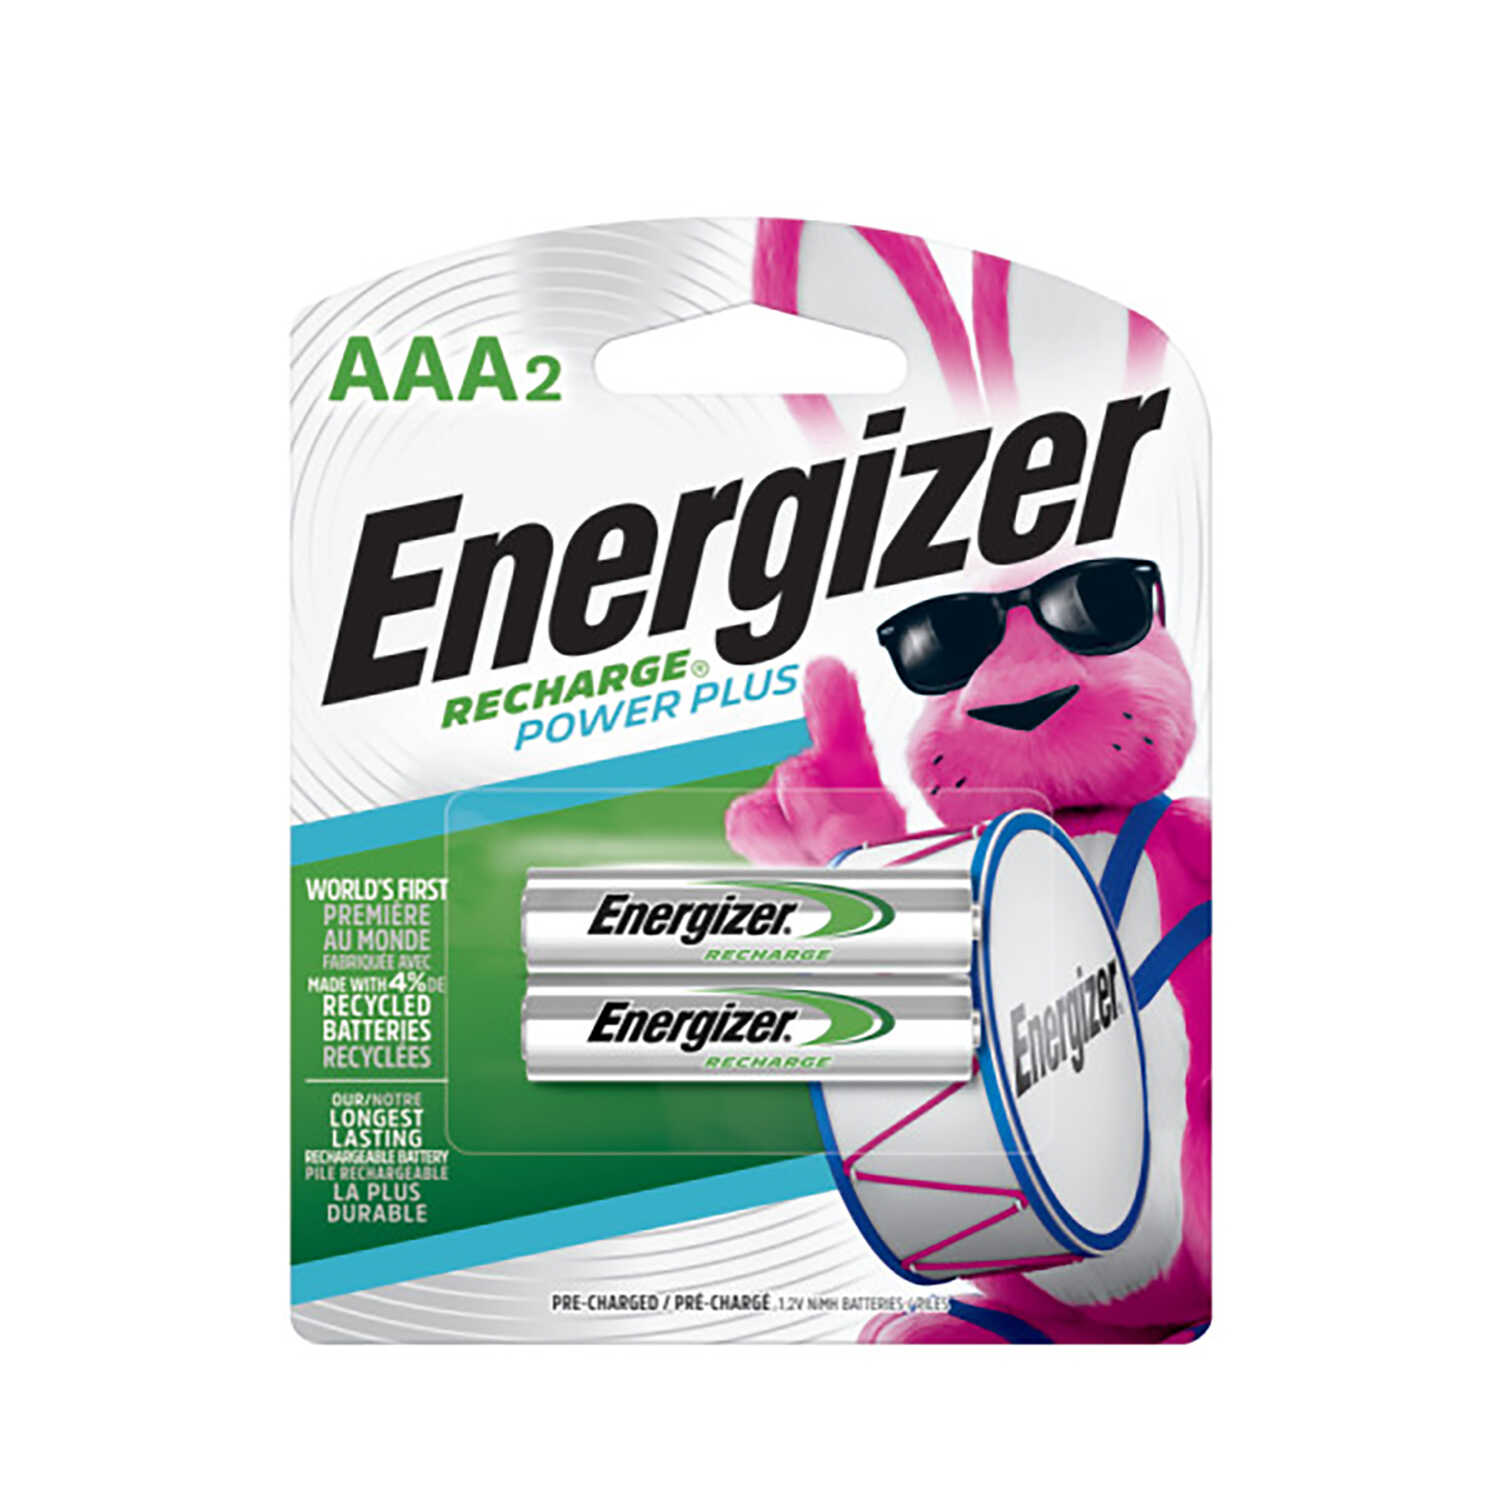 Energizer  NiMH  AAA  1.2 volt Rechargeable Batteries  NH35BP-2  2 pk